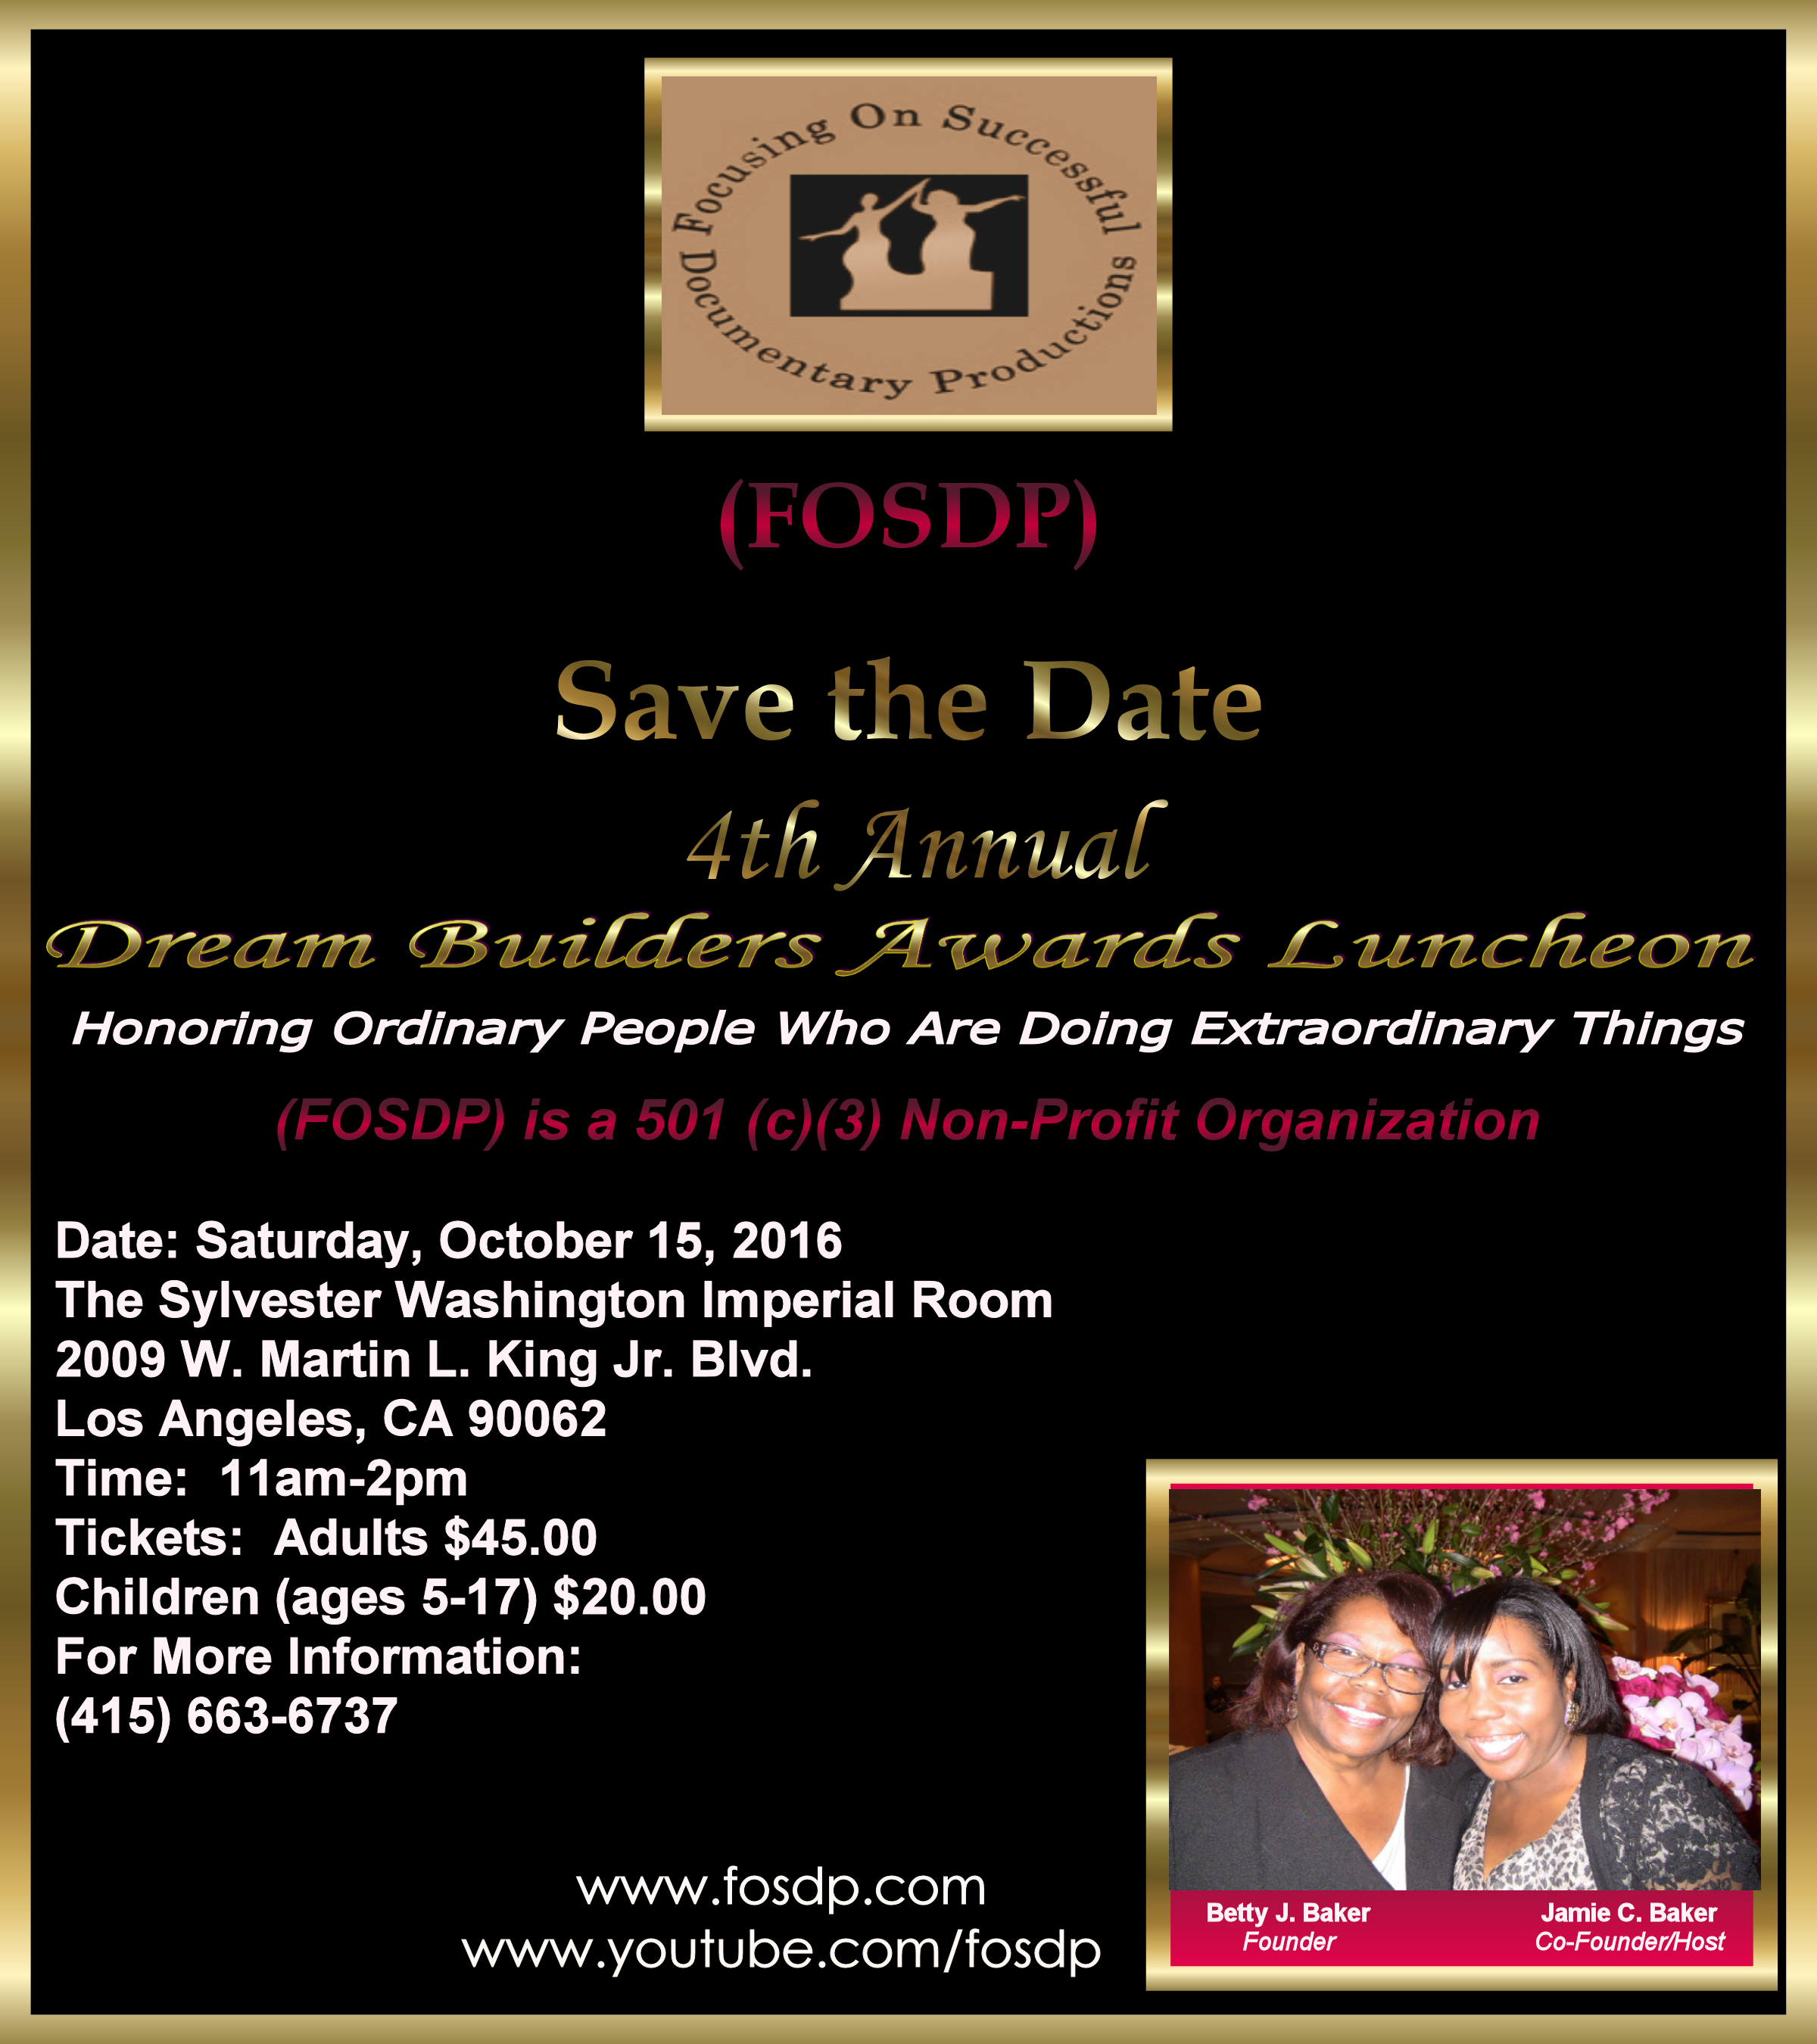 (FOSDP) presents the 4th Annual Dream Builders Awards Luncheon